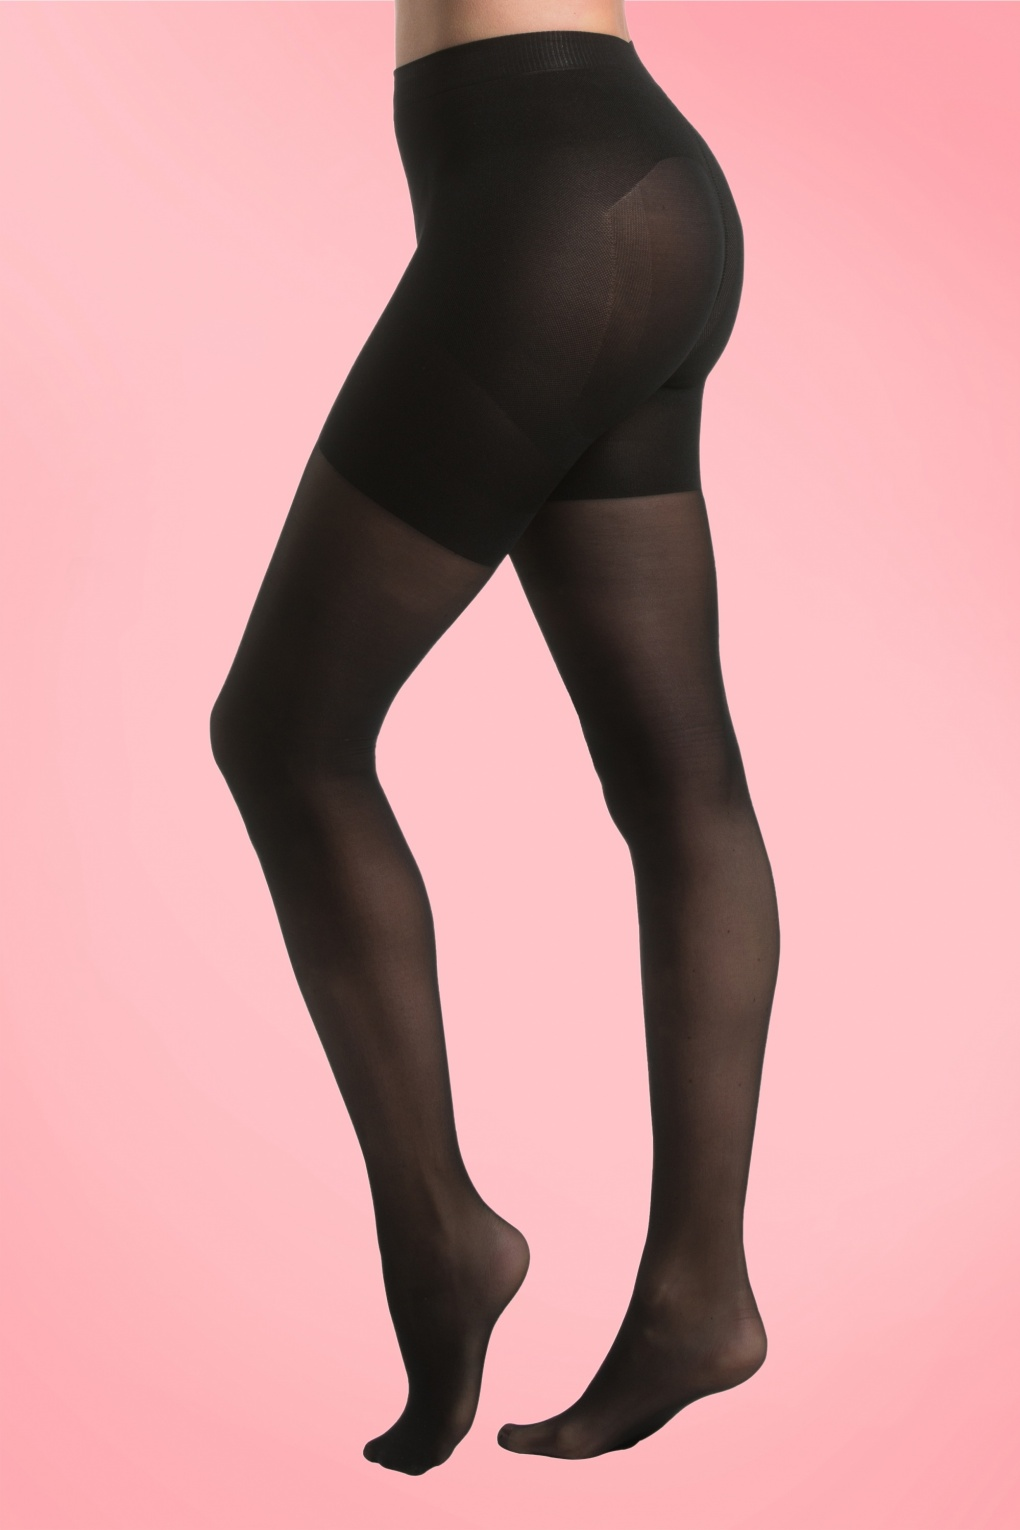 Sexy Legs Tights in Black